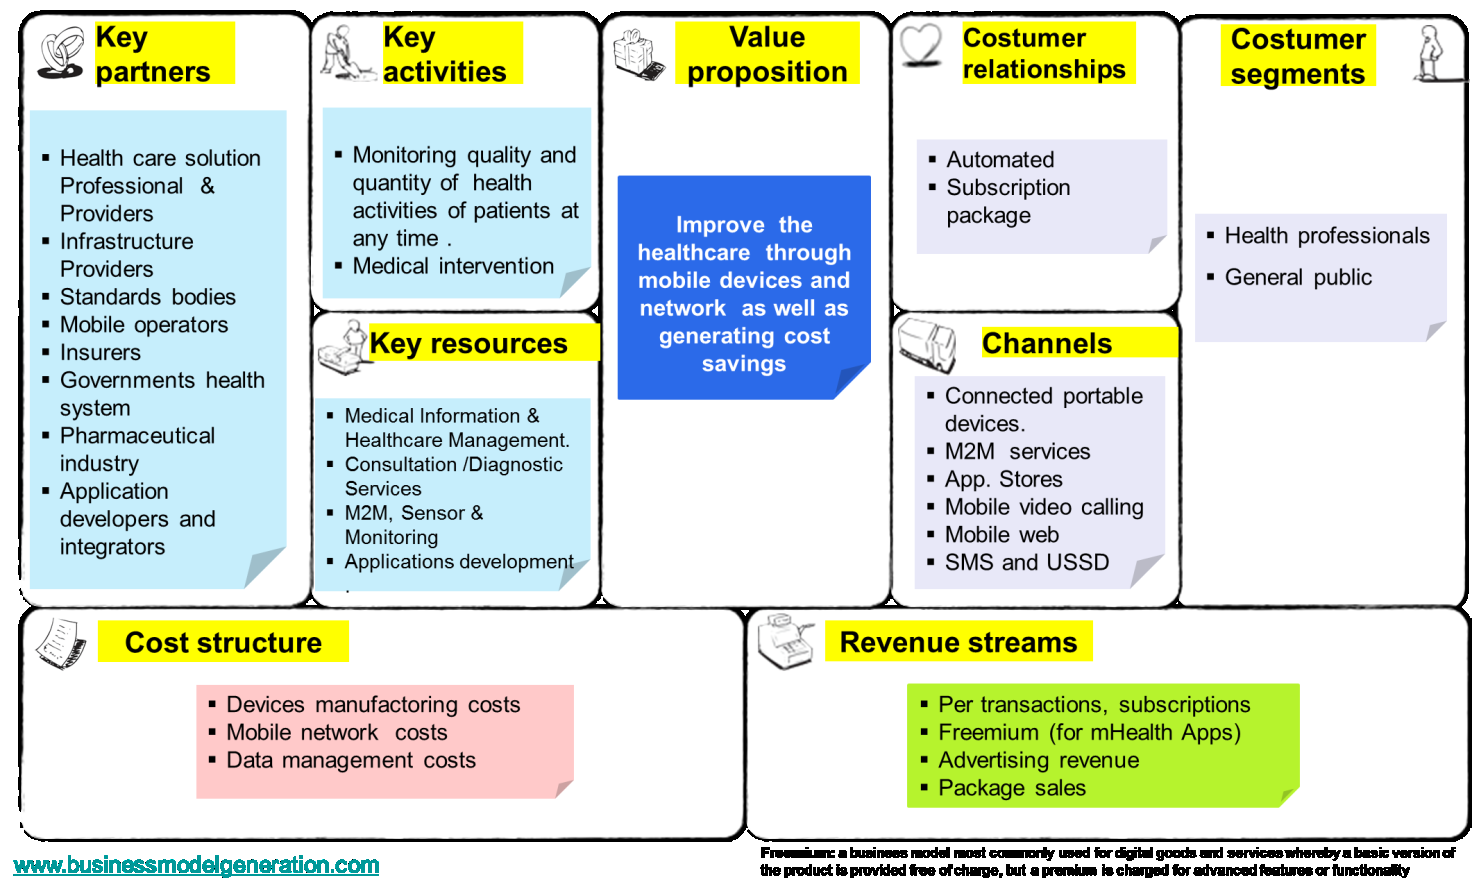 5. m-health Business Model The business model set according to the business model canvas proceeds as follow: Figure 4: m-health business model Source: www.businessmodelgeneration.com 6.